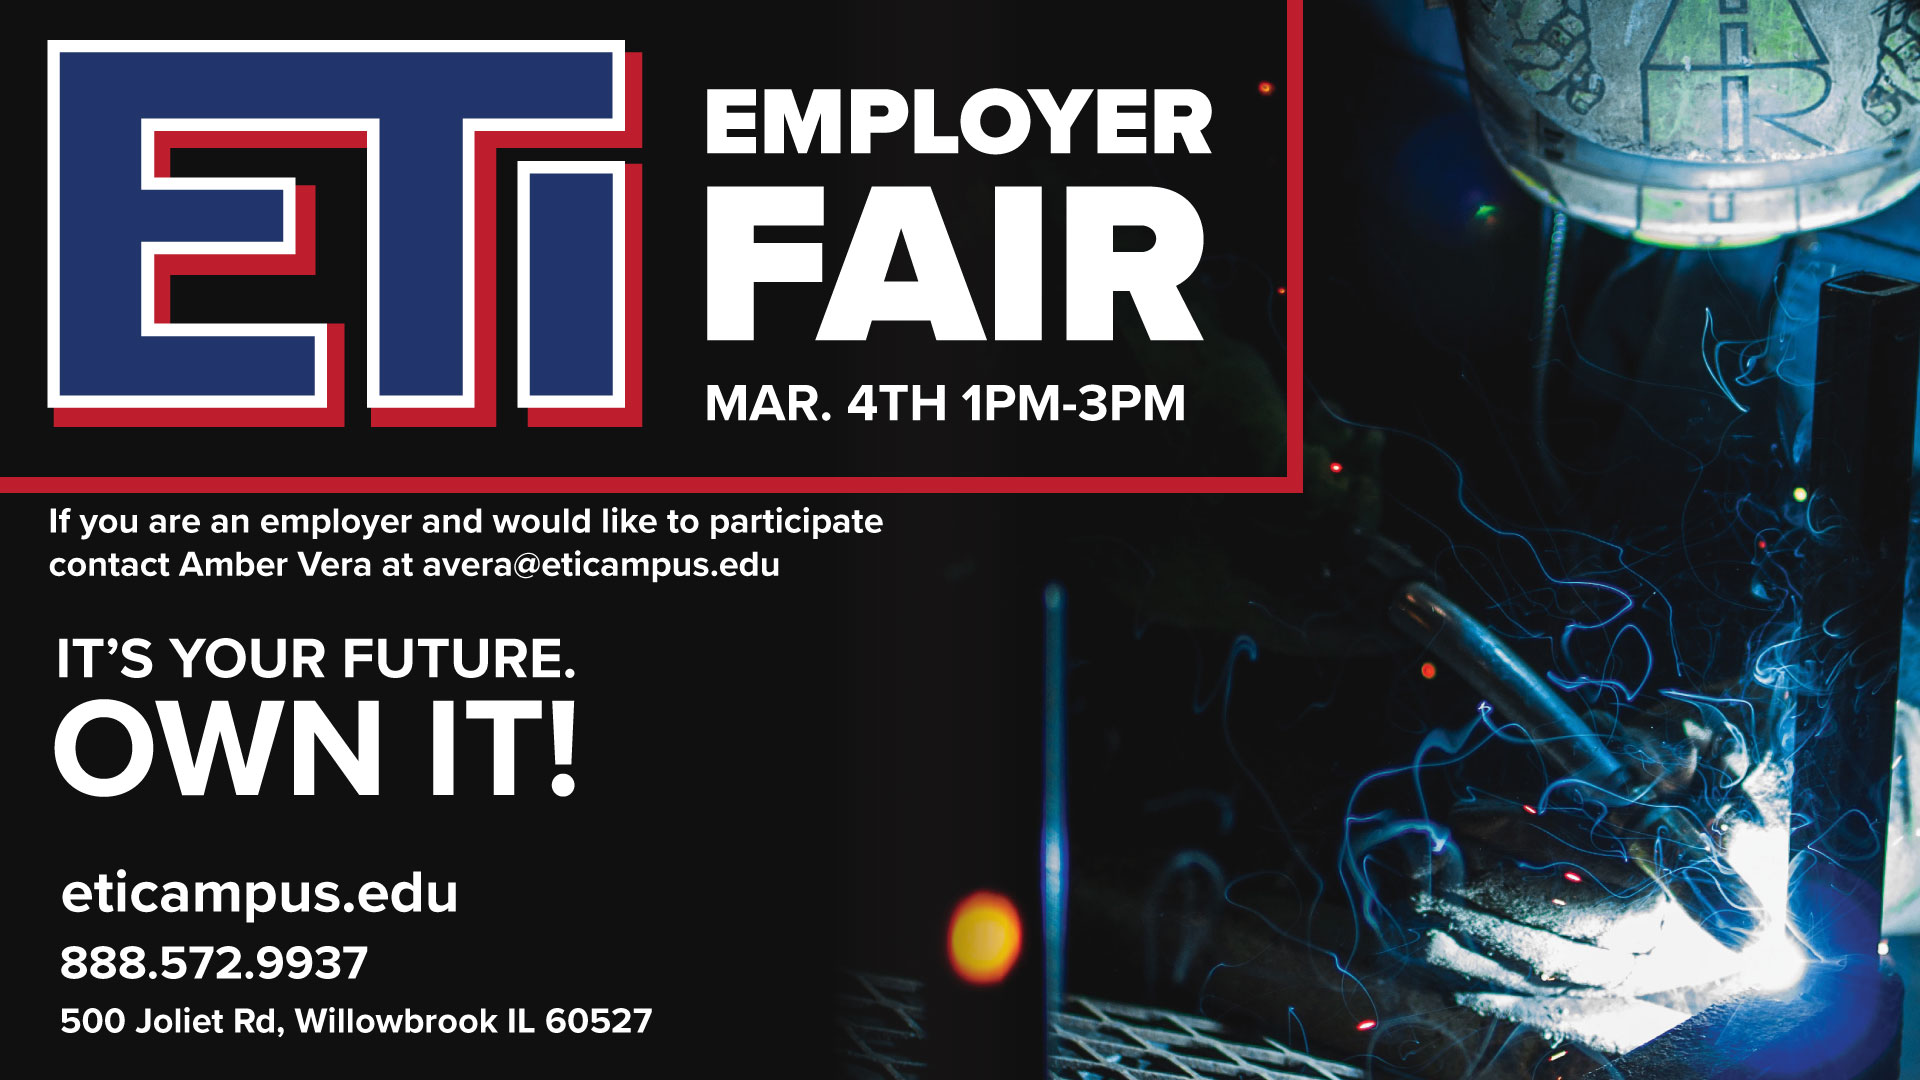 ETI Employer Fair March 4th, 2020